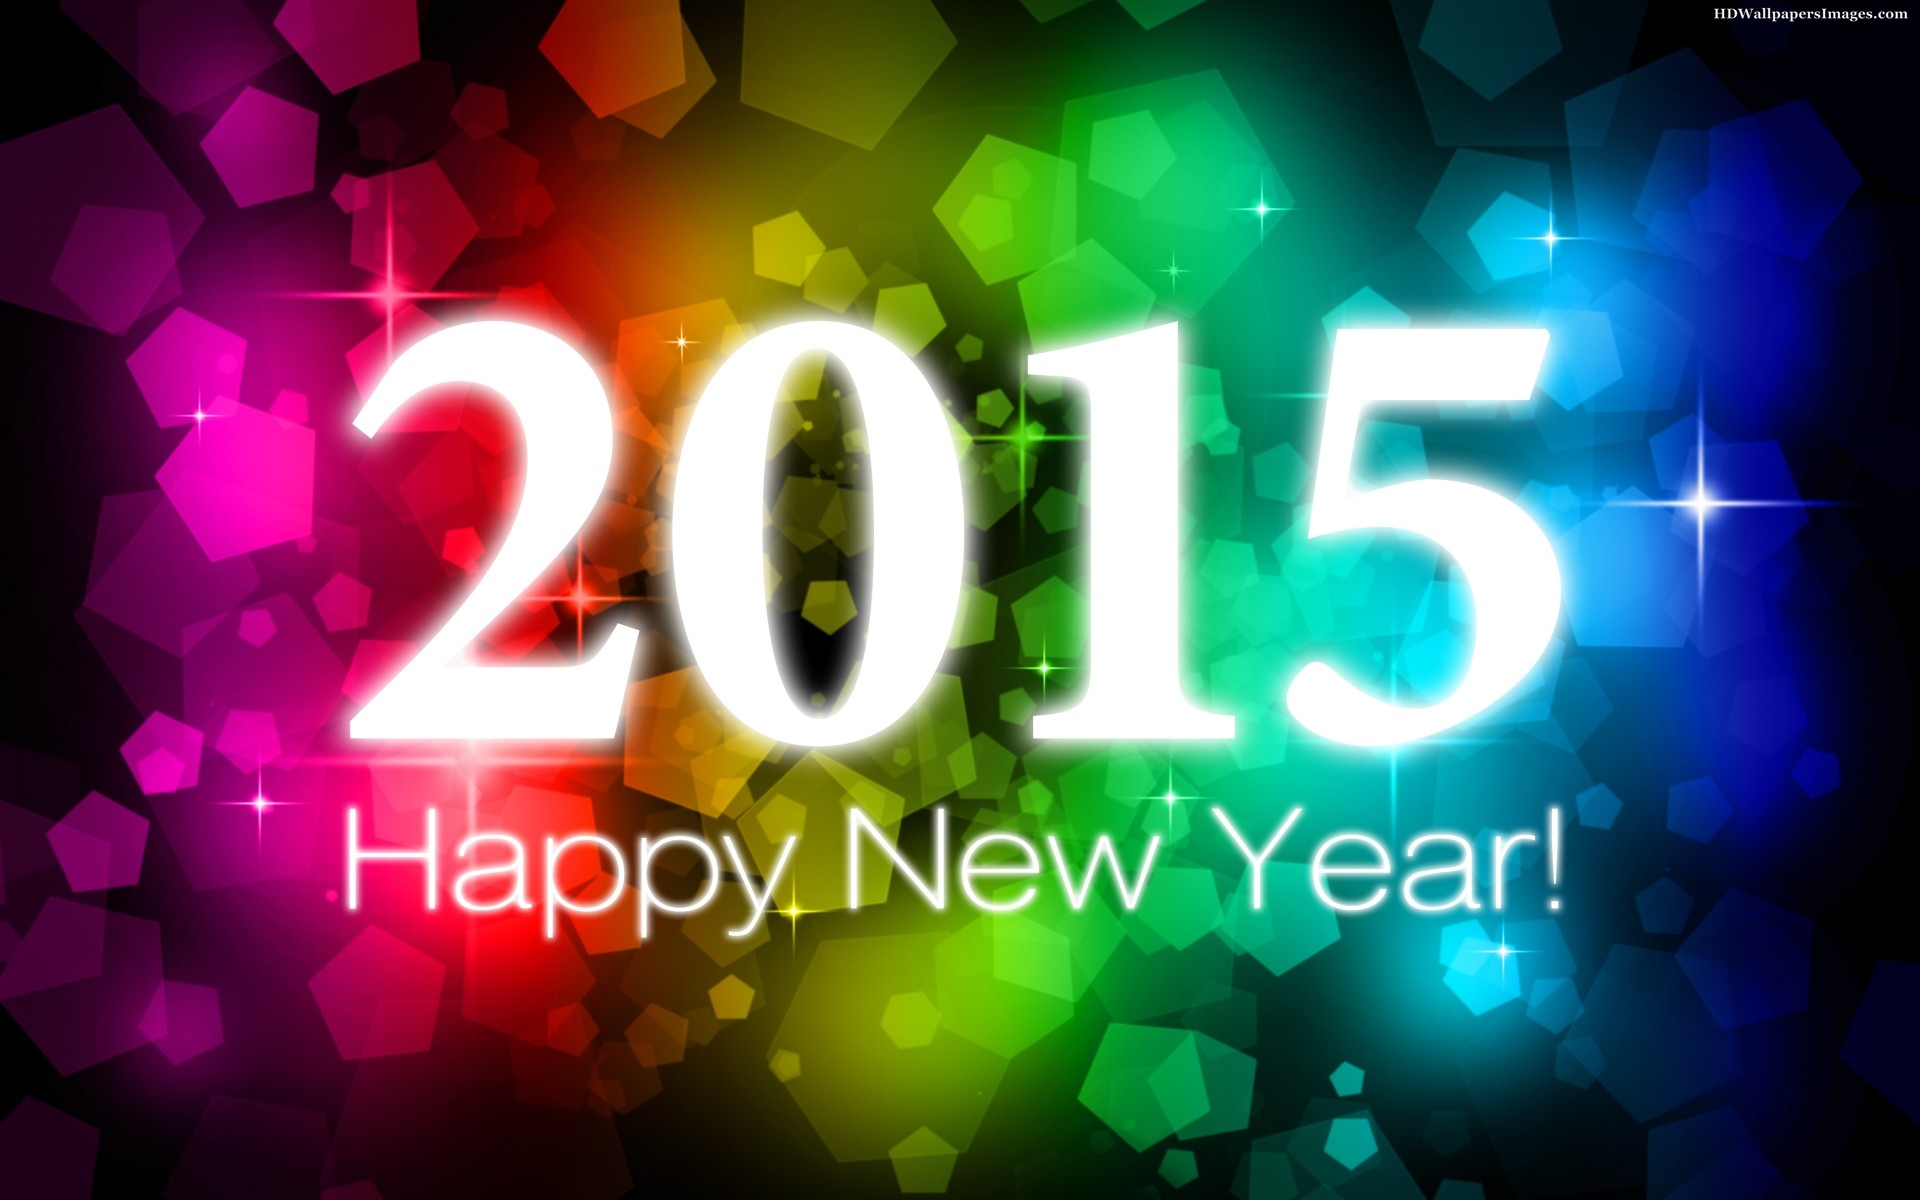 happy-new-year-2015-6.jpg